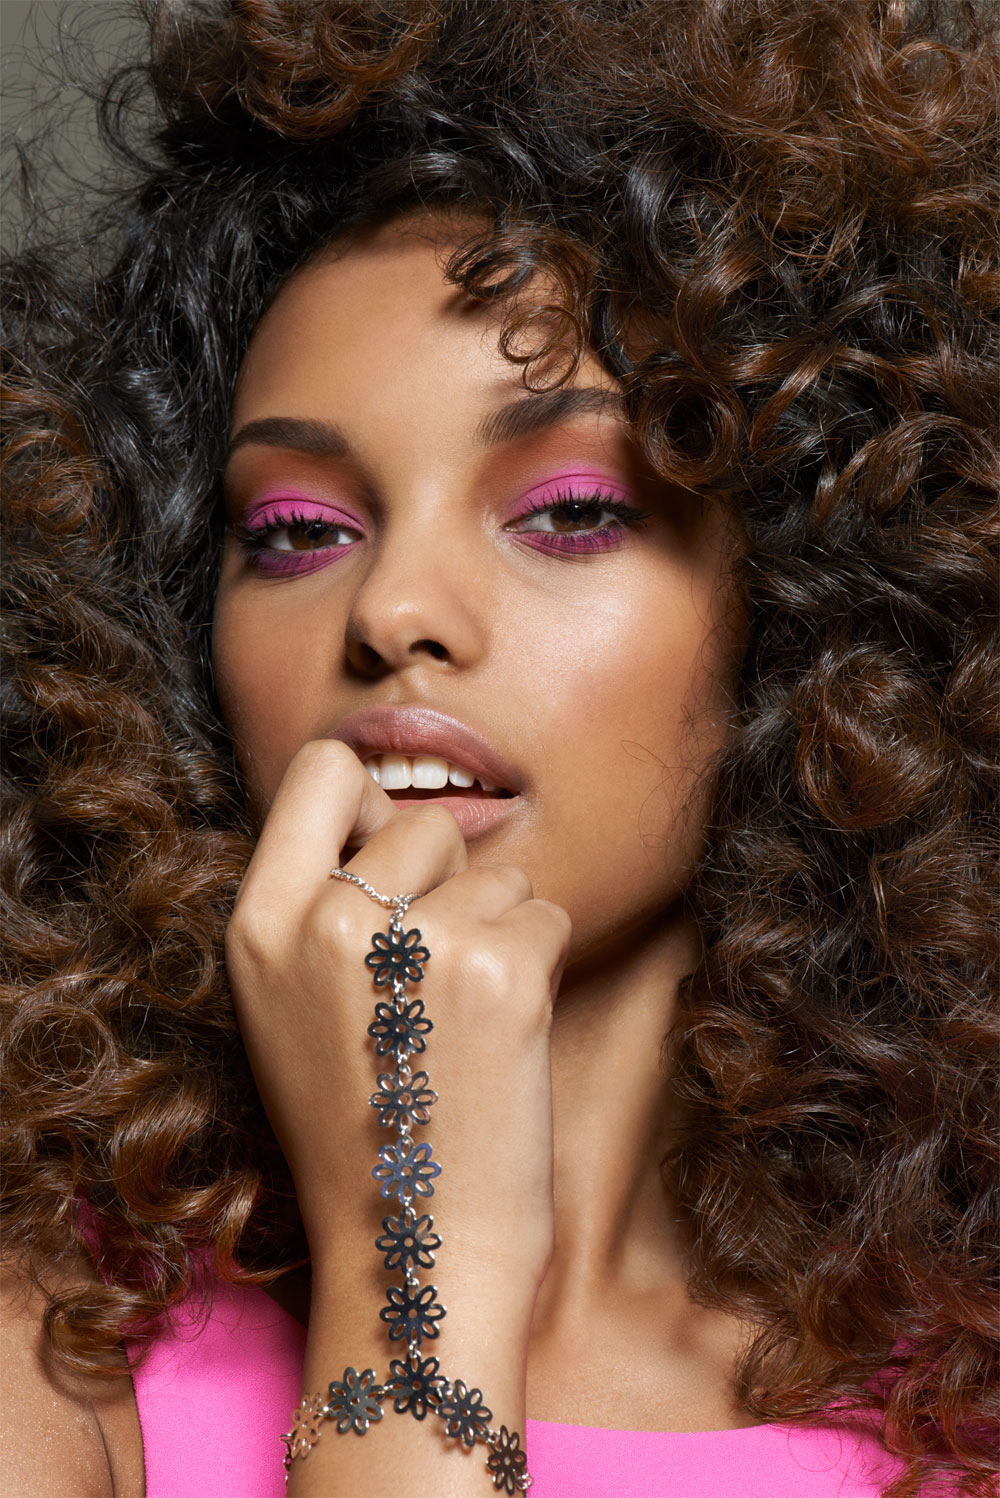 Prom Makeup For Brown Eyes: 14 Stunning Prom Makeup Ideas